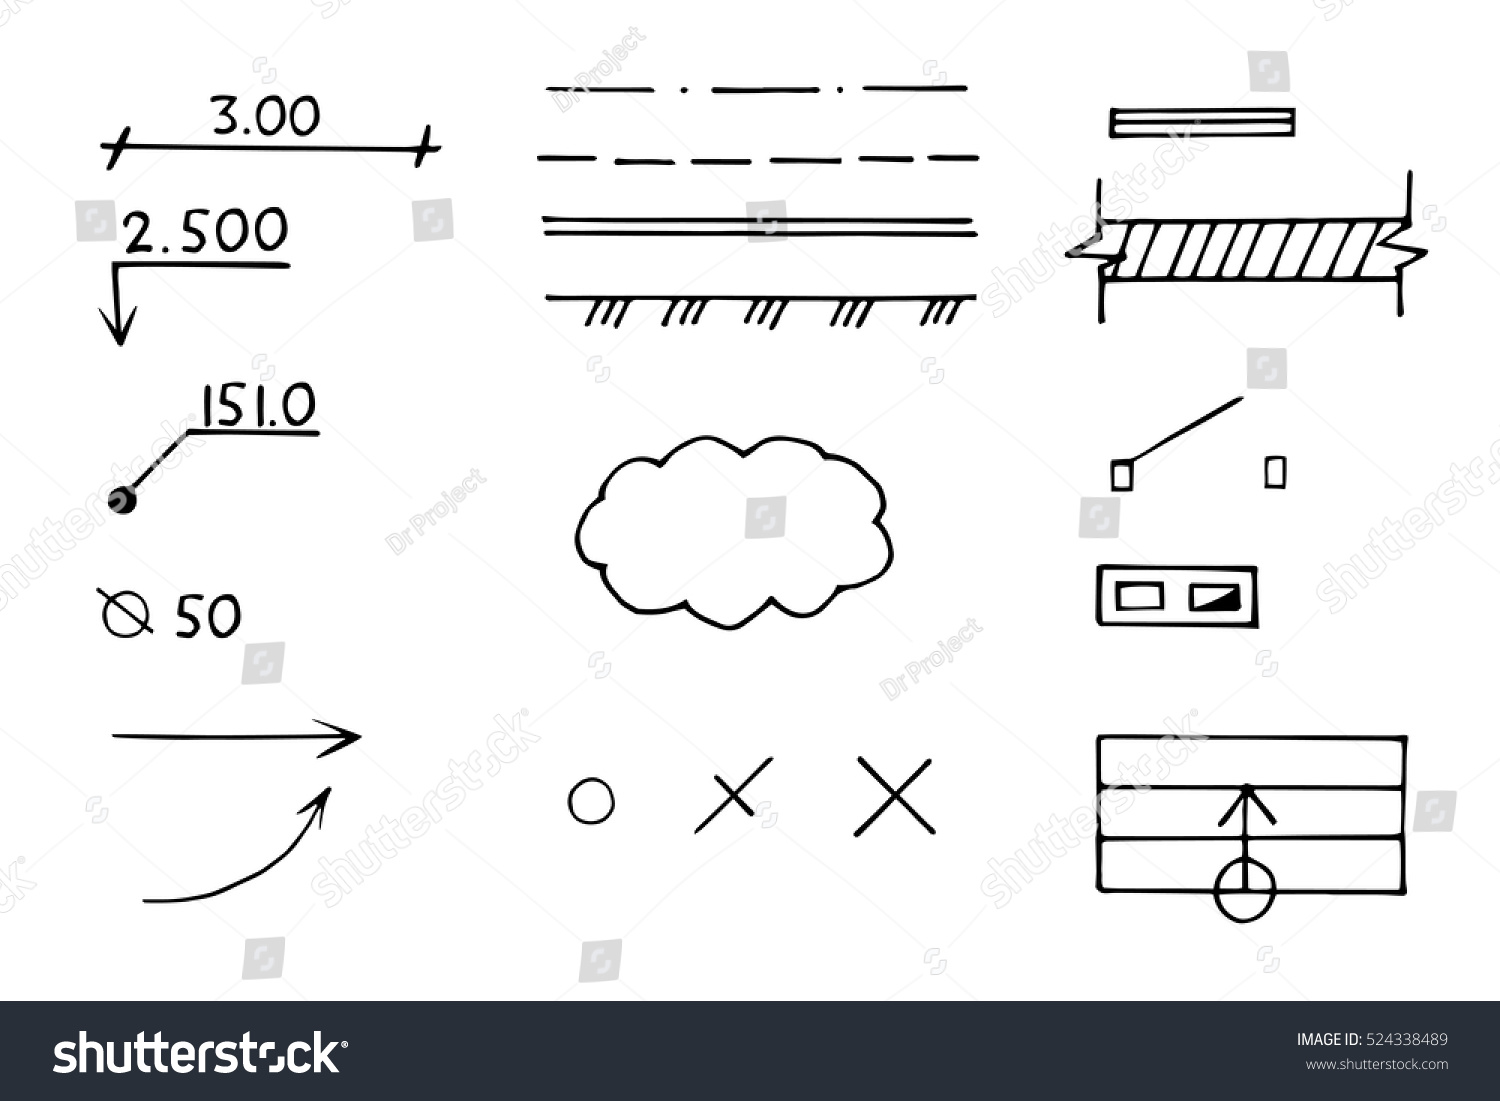 Architectural Engineering Signs Symbols Vector Hand Stock Vector